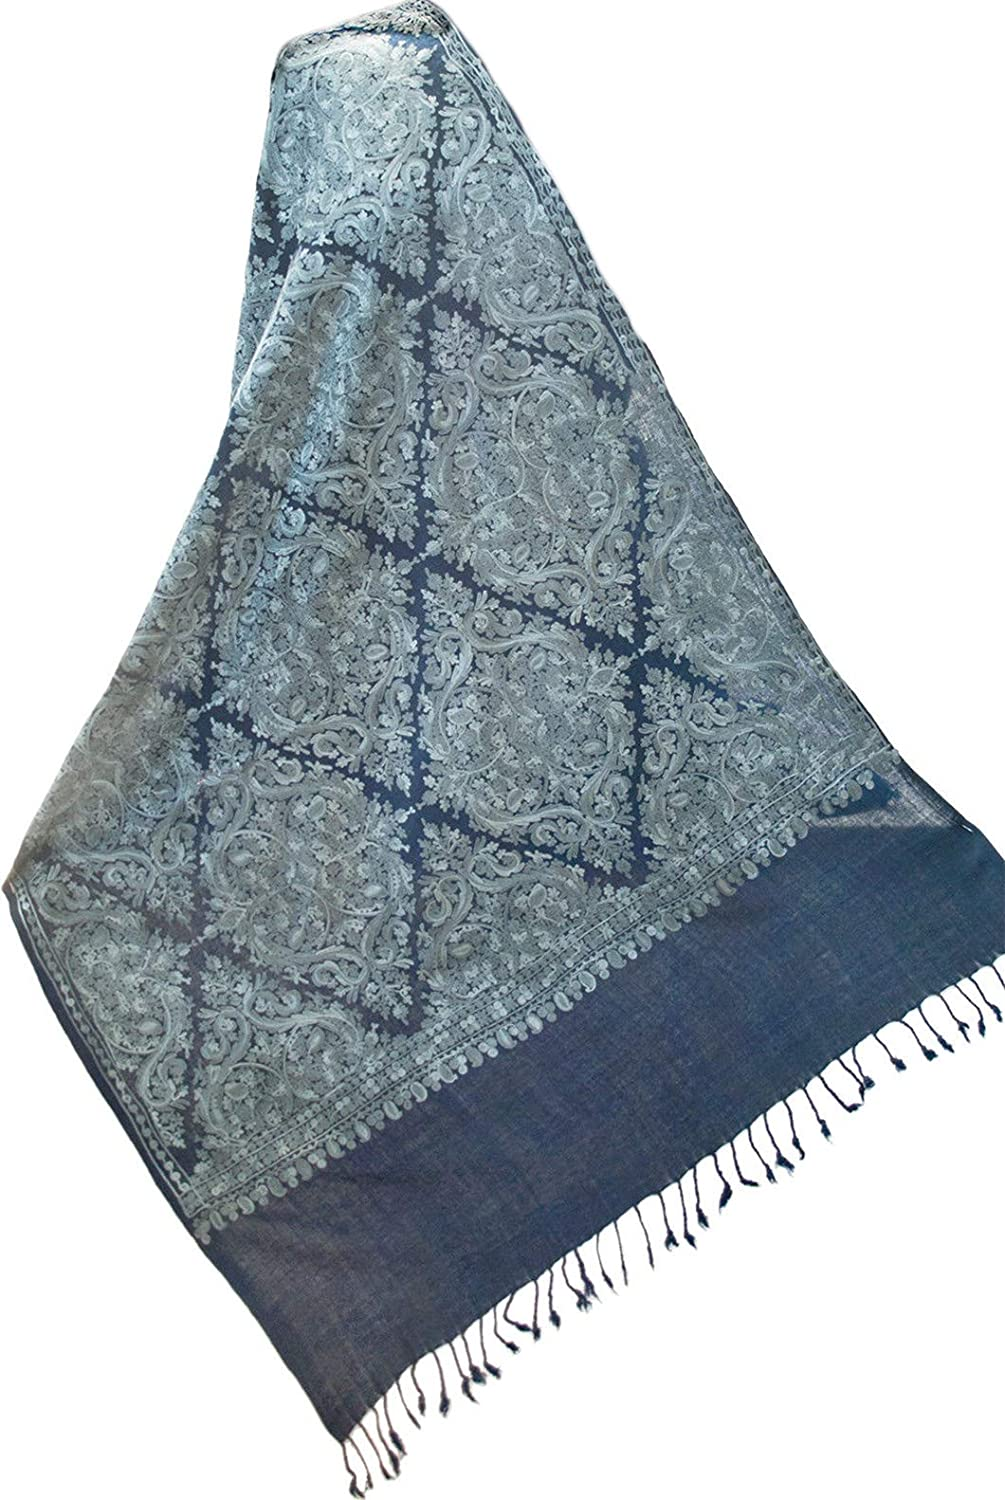 Navy bluee Wool Shawl Pashmina Embroidered in Silver bluee. Aqua Wrap 76 x27